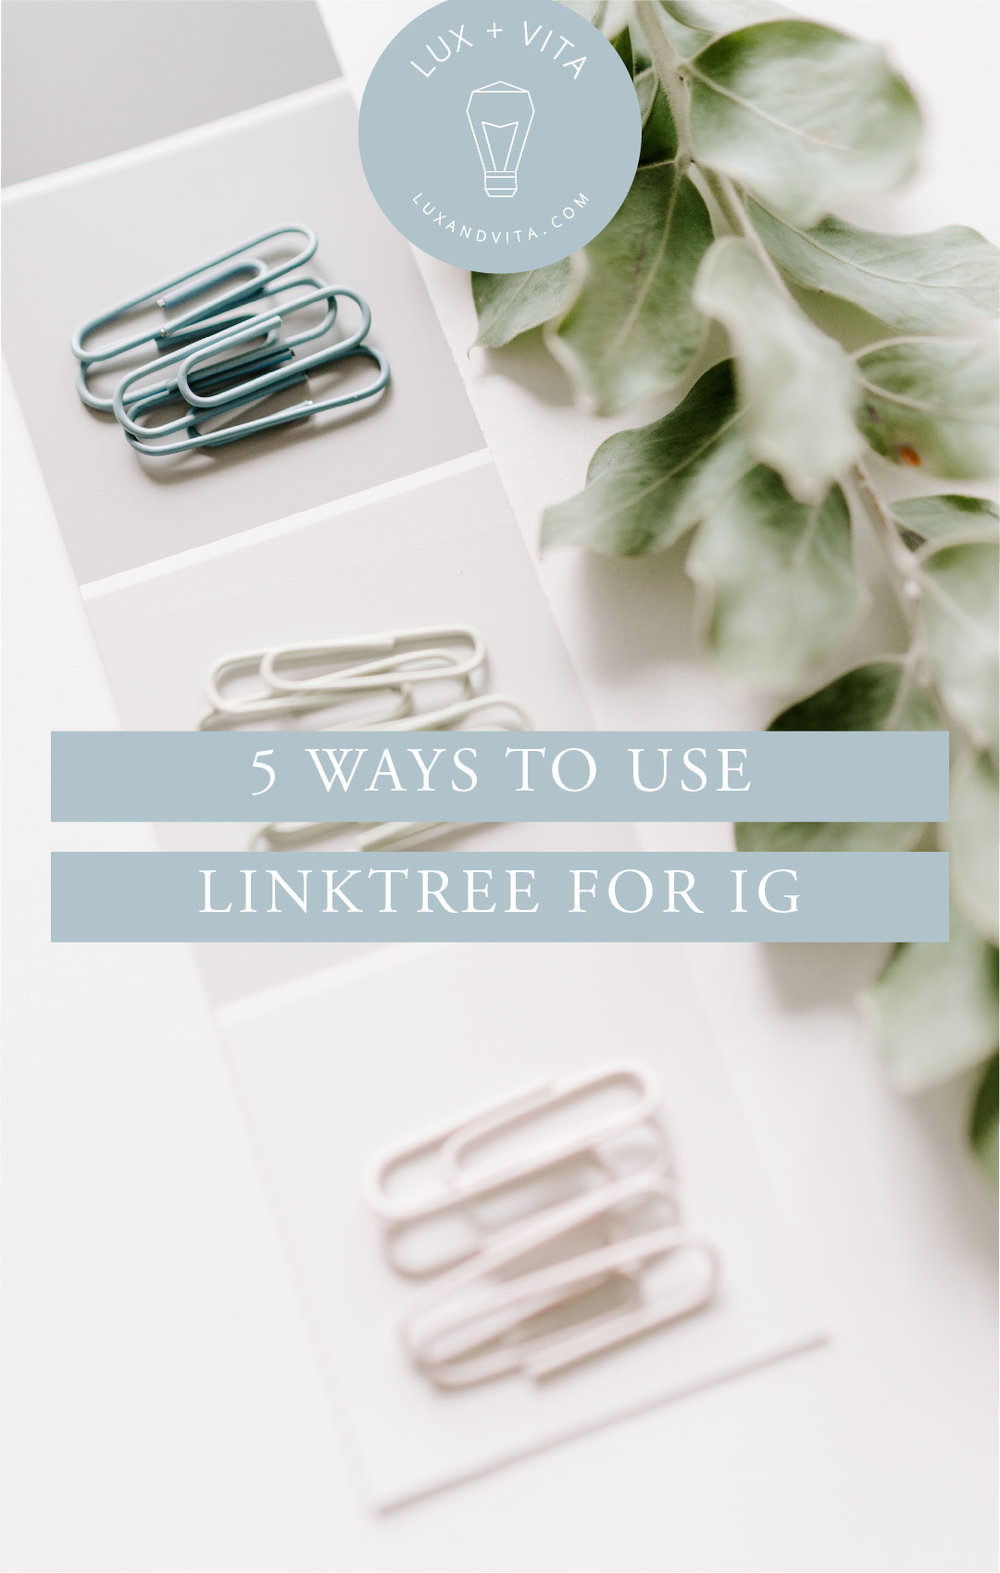 Blog-ways-to-use-linktree-instagram_Pinterest-Tall.jpg